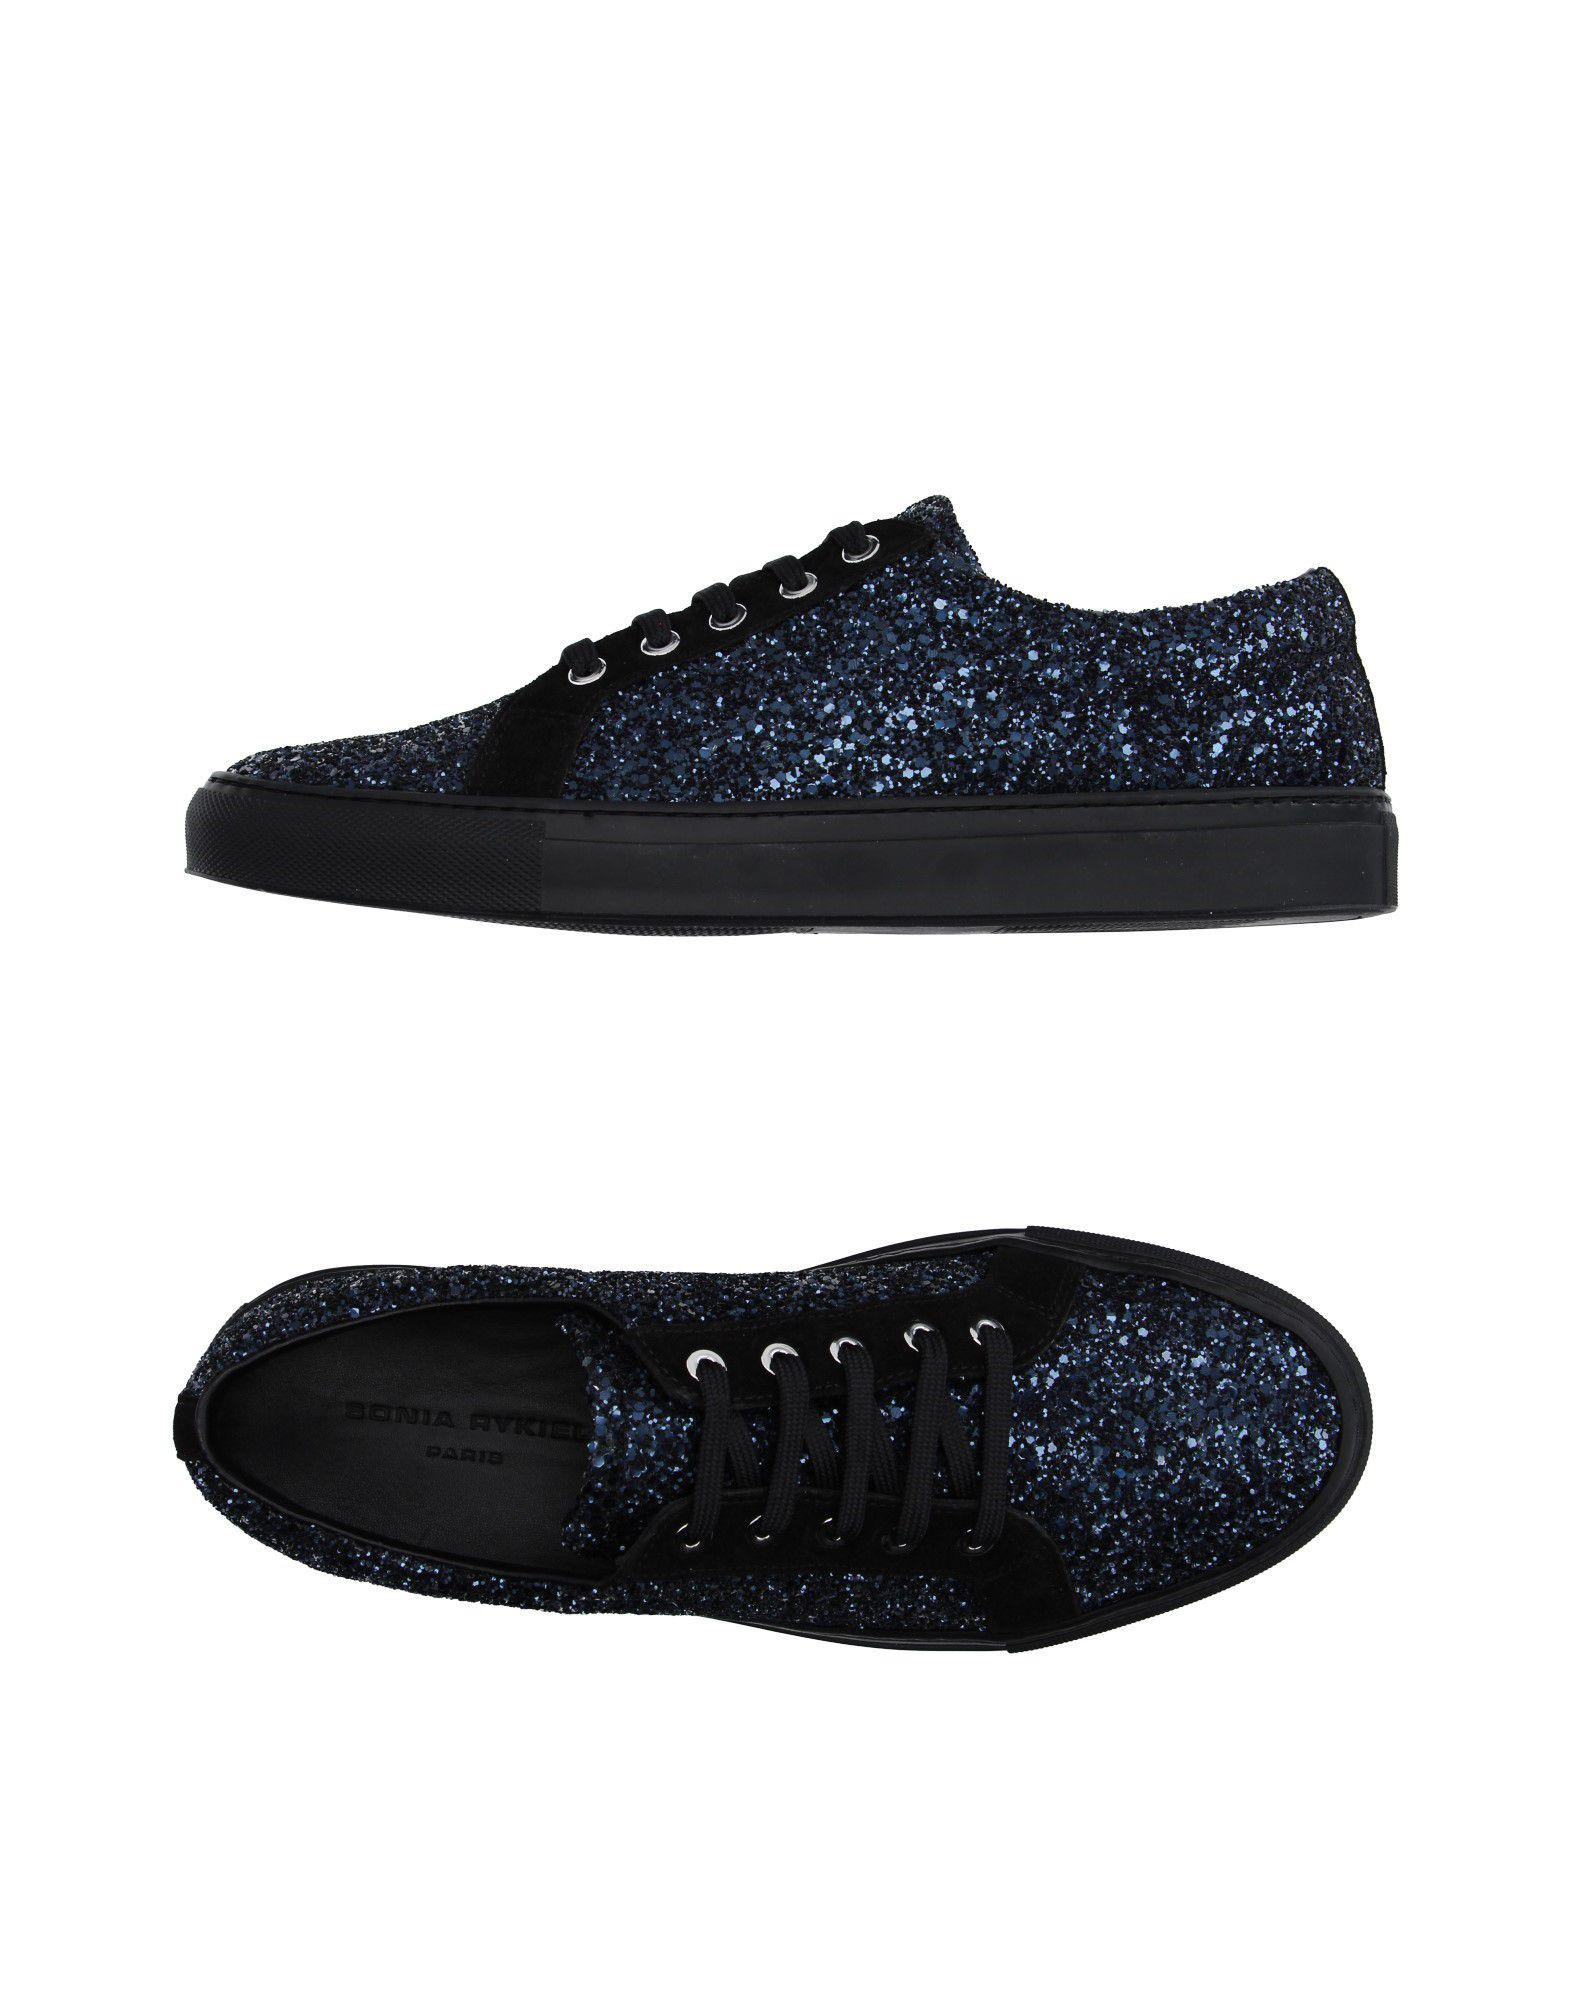 From China Cheap Online Discount Pick A Best FOOTWEAR - Low-tops & sneakers Sonia Rykiel With Paypal Online Free Shipping Best 0oDcrlA